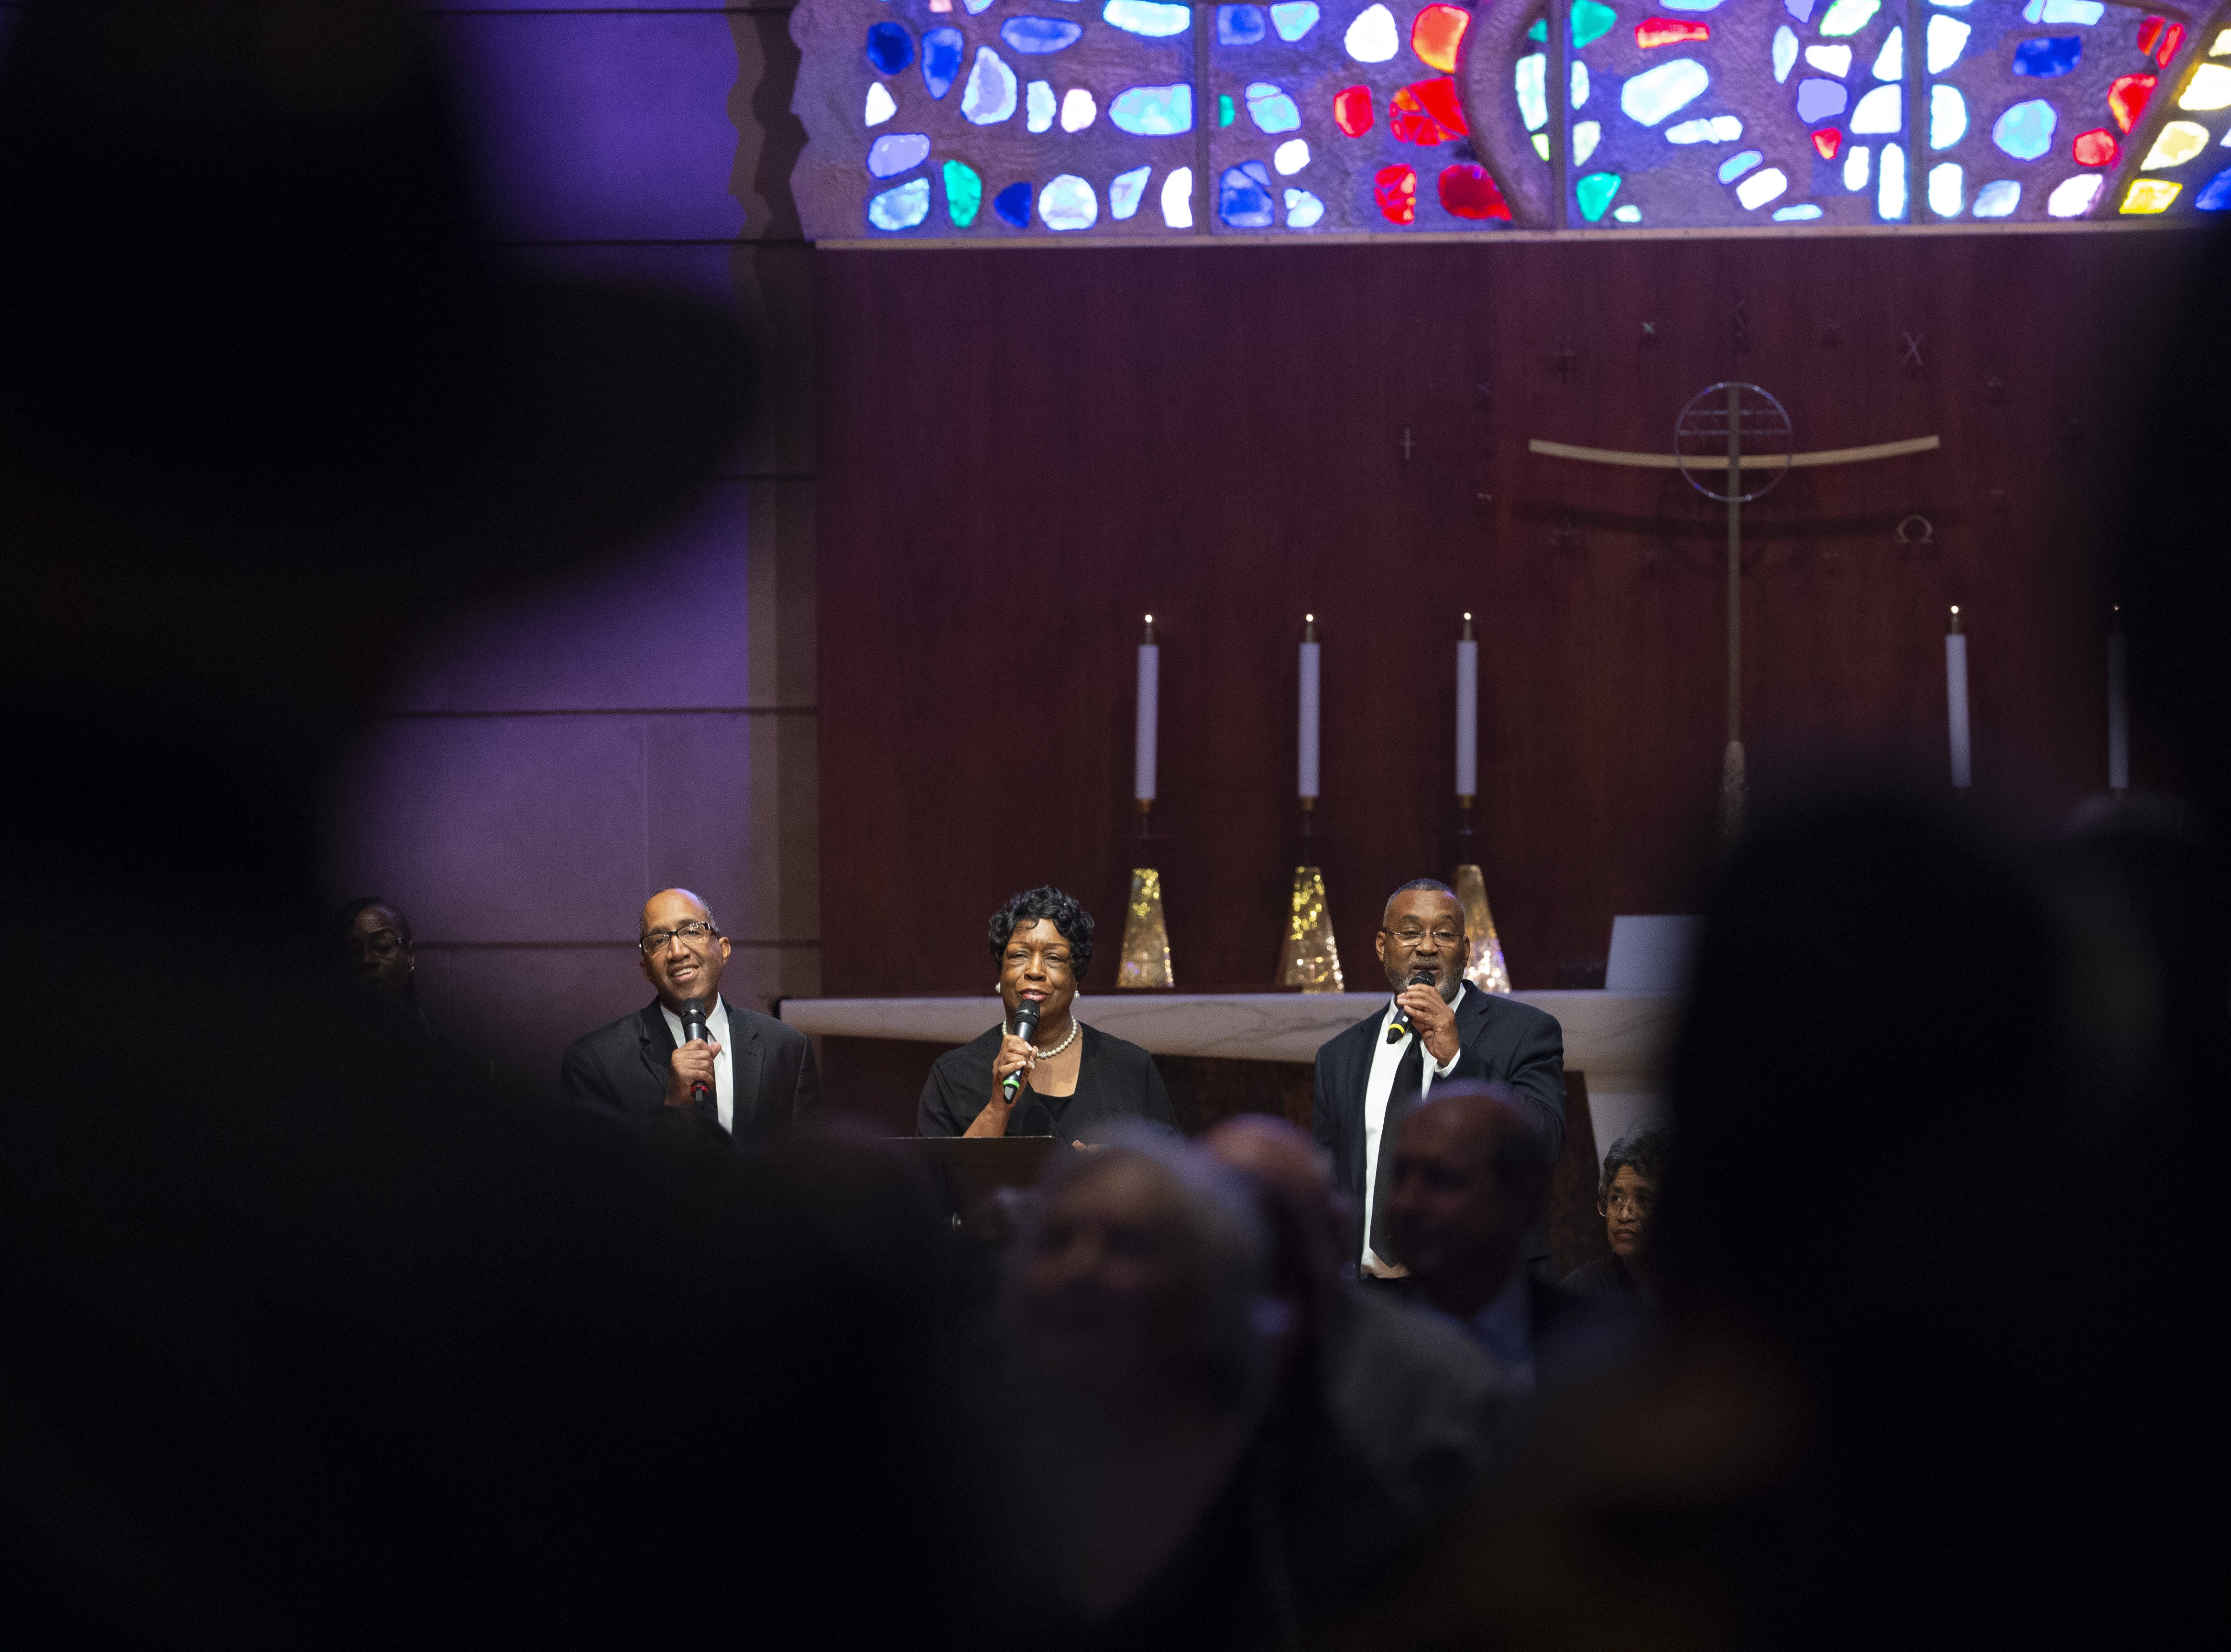 Tanner Chapel Voices sings during memorial services for Carolyn Warner, at First United Methodist Church in on October 25, 2018. Warner was the 15th Superintendent of Public Education for the state of Arizona and nearly became the state's first female governor in 1986.